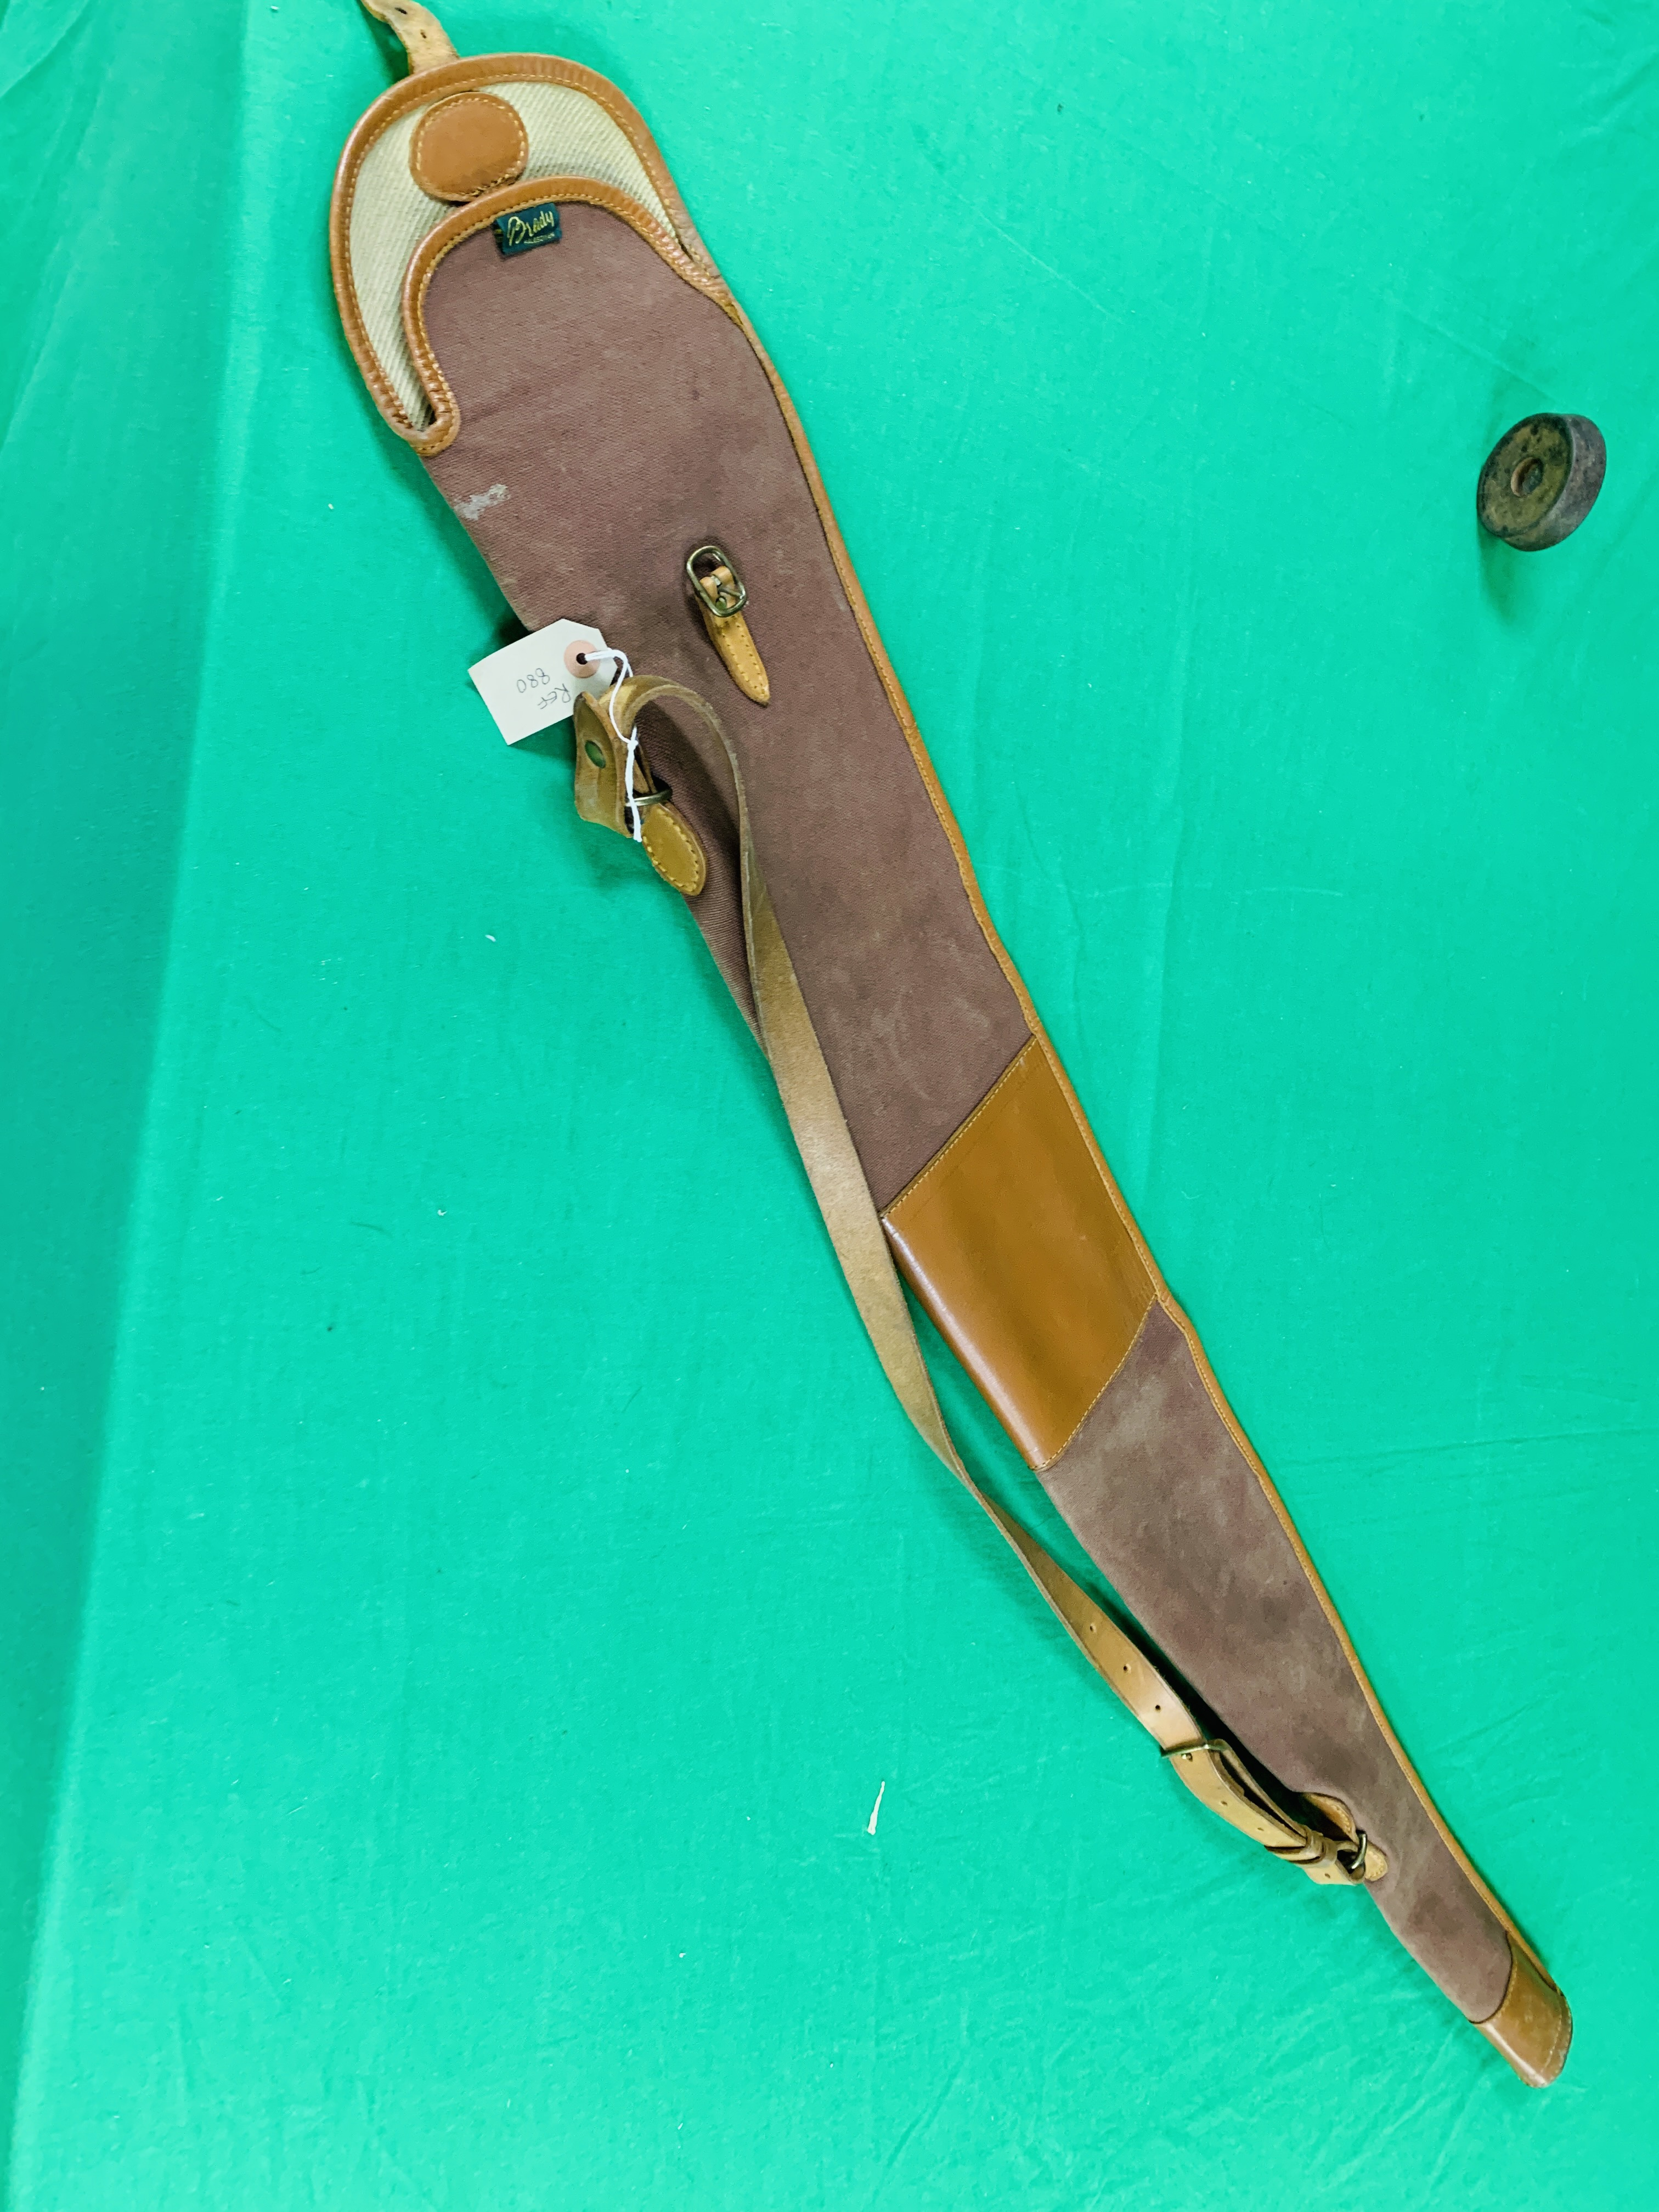 12 BORE BERETTA OVER AND UNDER SHOTGUN # B17388B WITH GUN SLEEVE - (ALL GUNS TO BE INSPECTED AND - Image 9 of 9